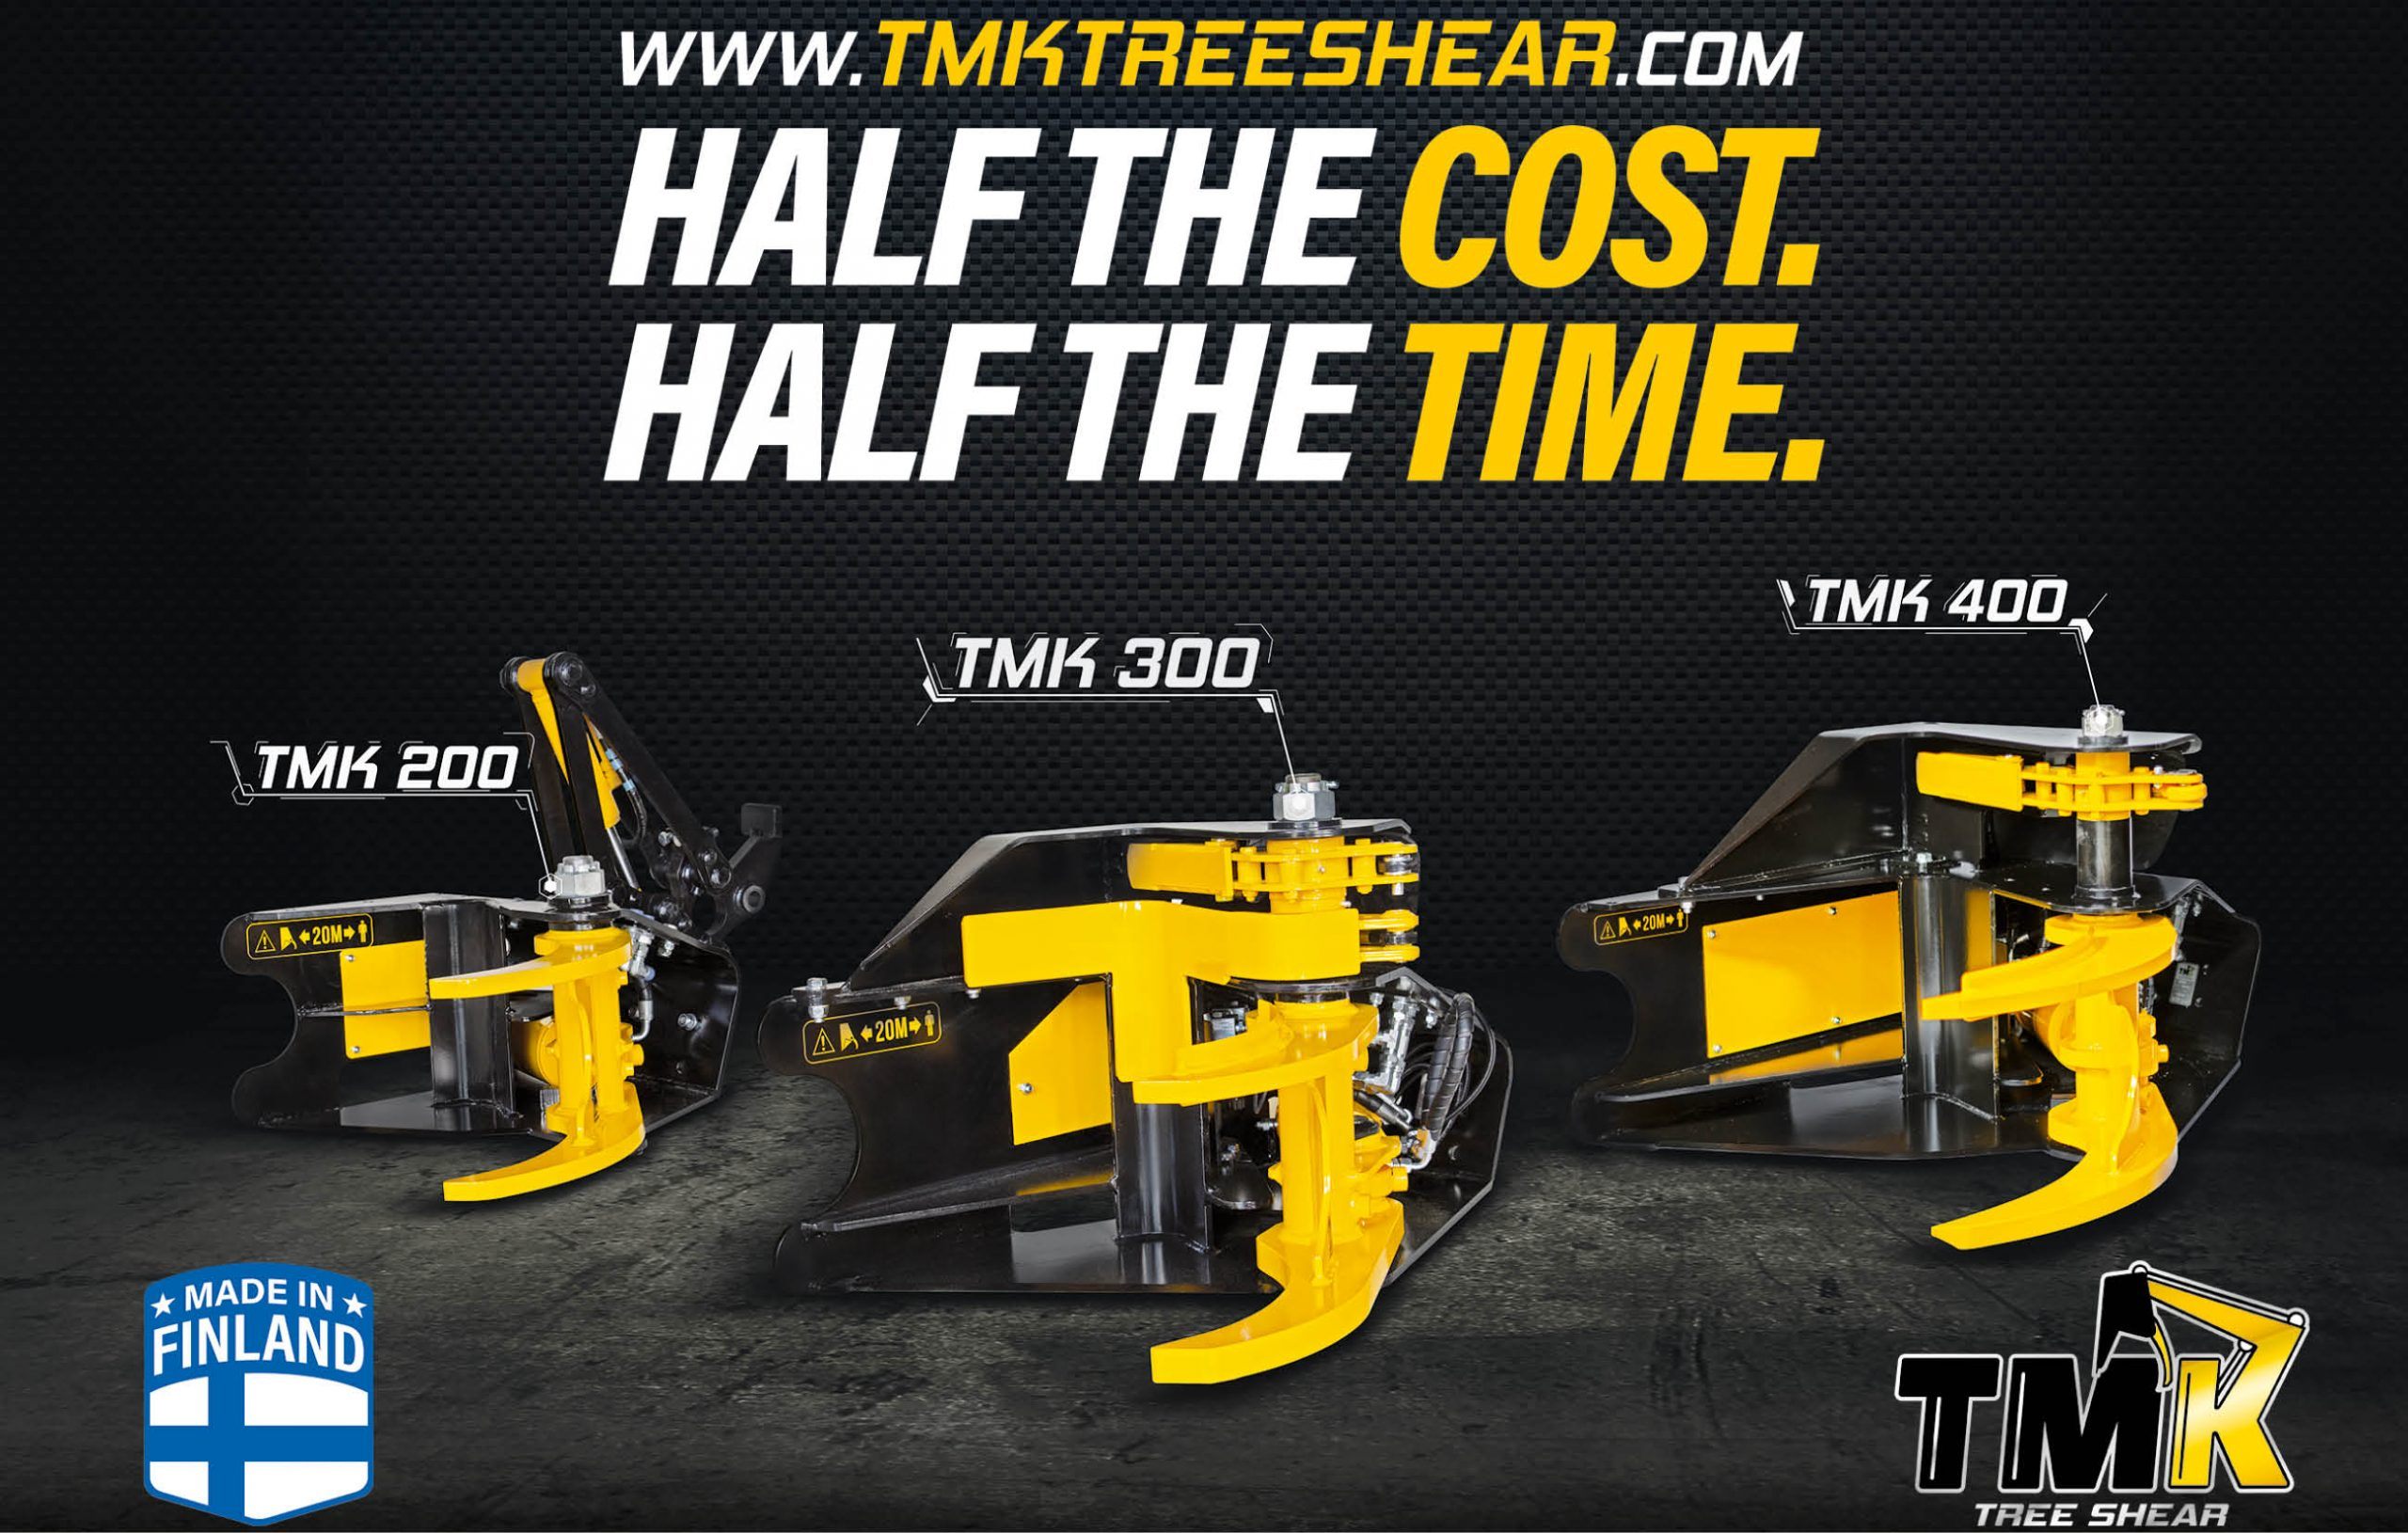 TMK Tree Shear